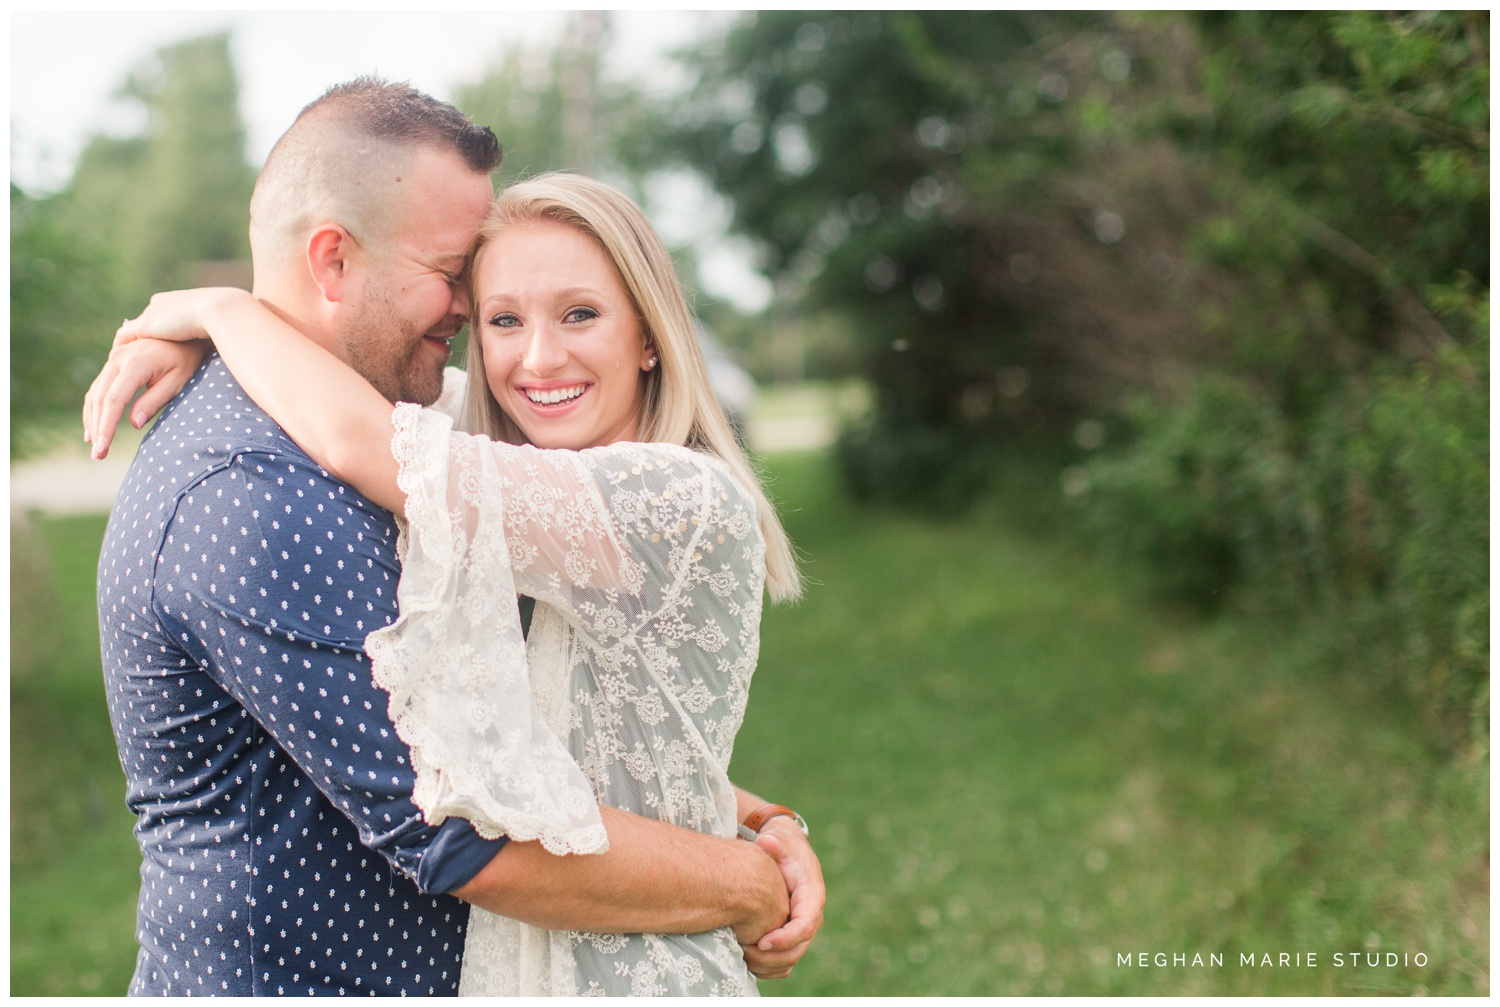 meghan marie studio ohio dayton troy photographer wedding photography engagement alex kaila family honeycreek preserve champagne downtown courthouse urban rural earth toned nature woods barn country city stone fountain elegant_0461.jpg